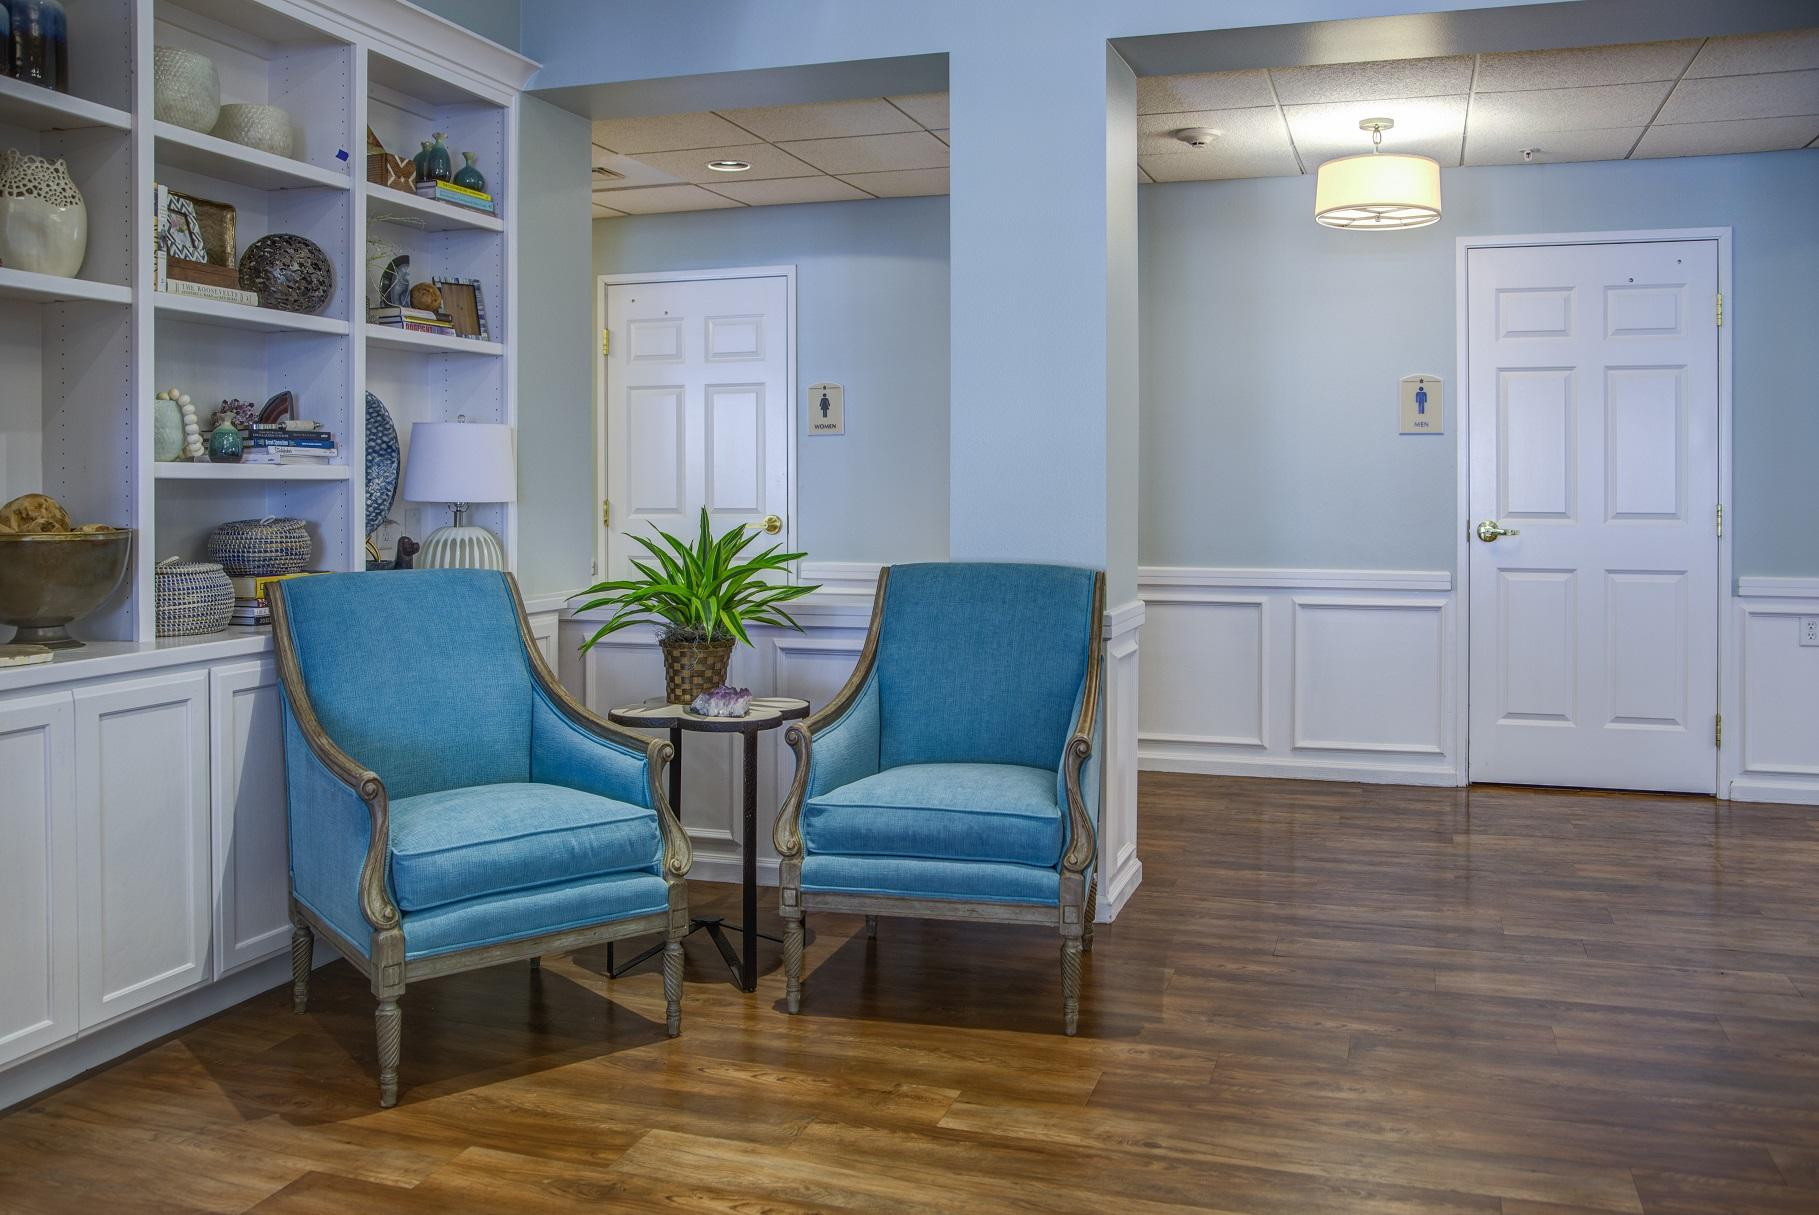 Brookfield Senior Living and Memory Care image 4